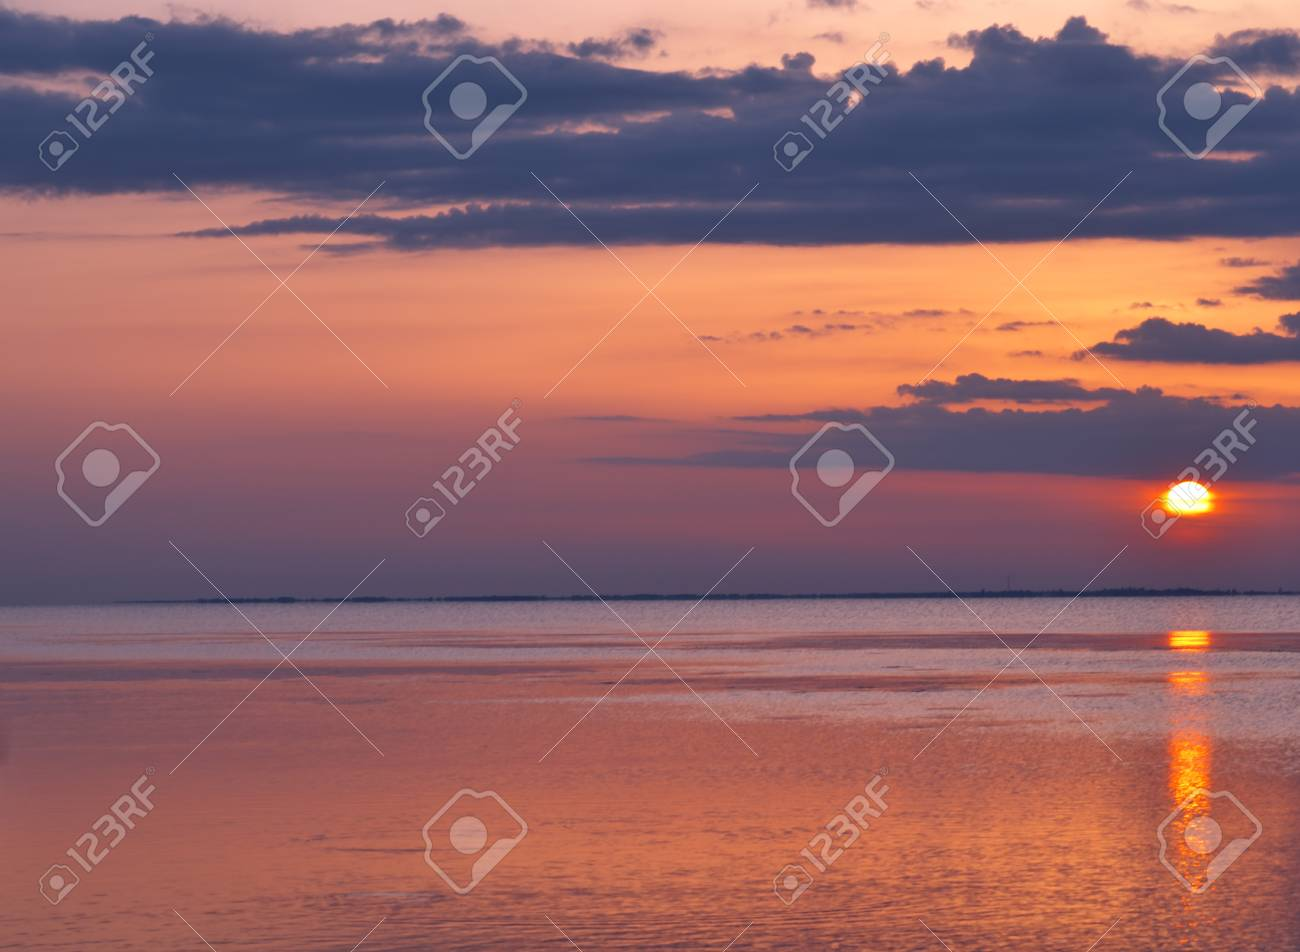 Sunset on the beach over sea in the summer, landscape. - 60807706